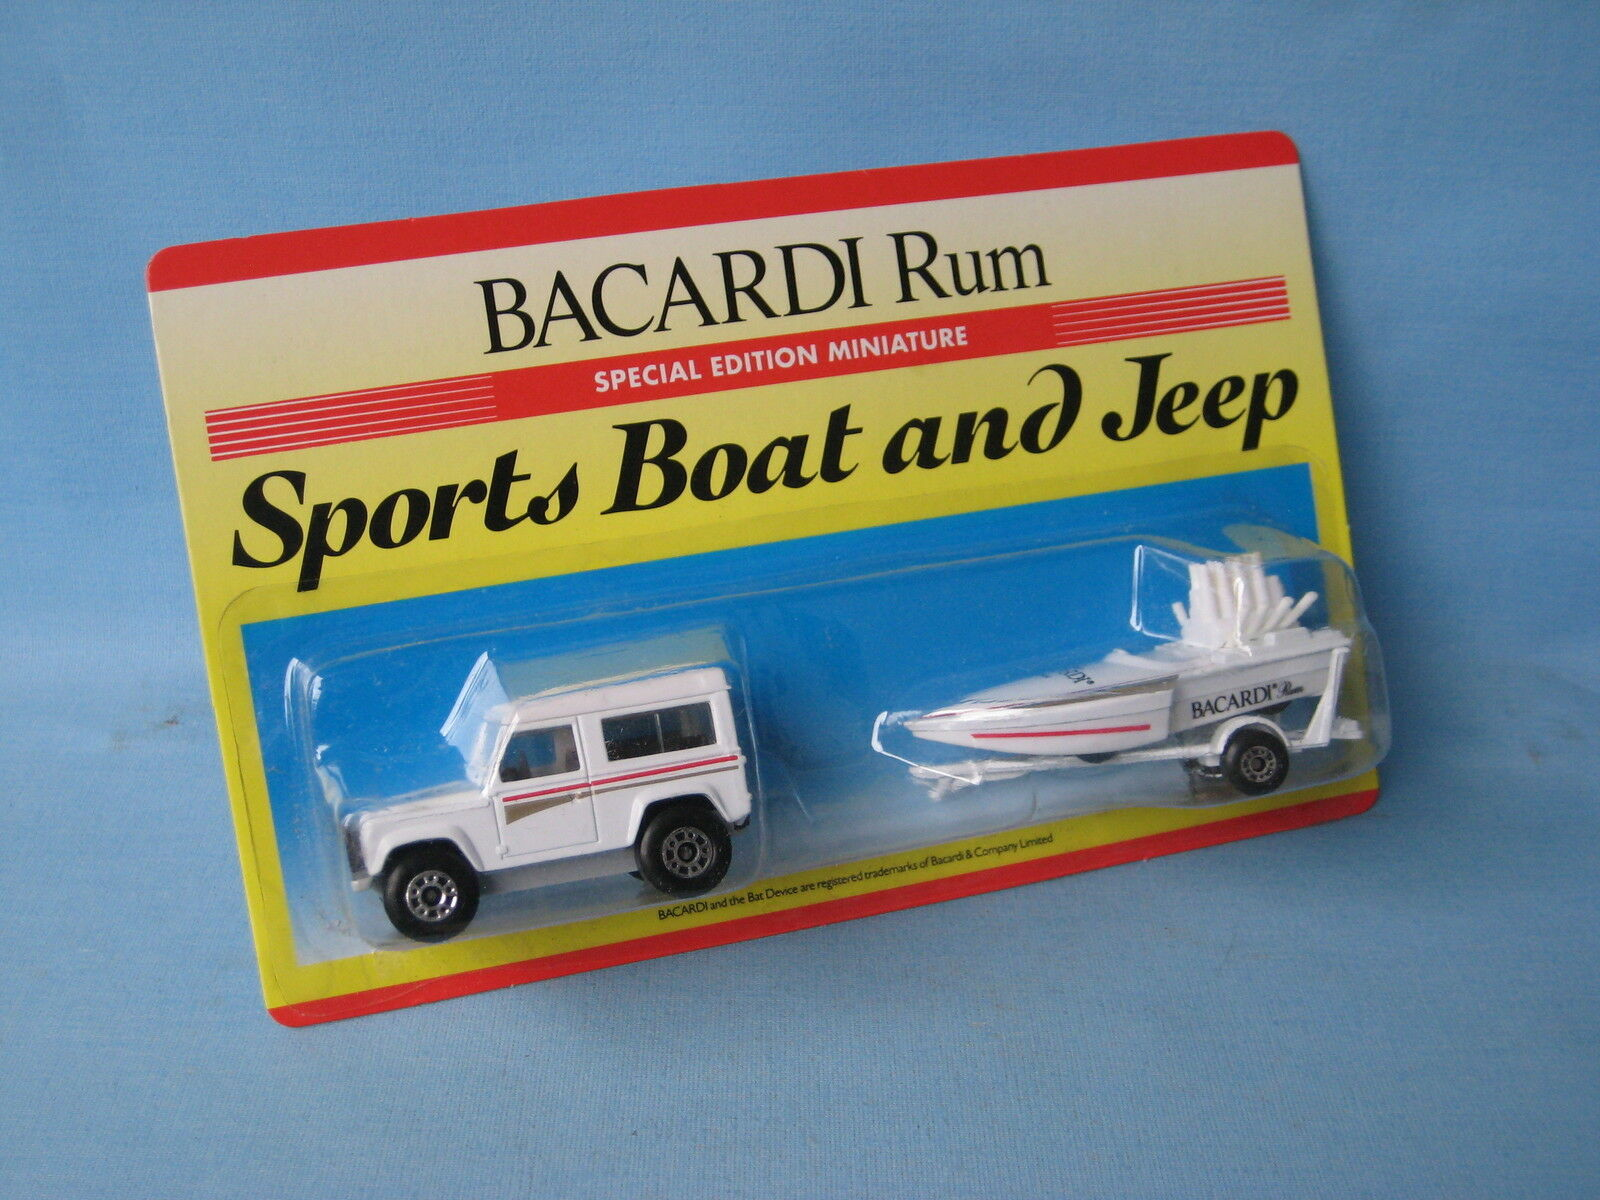 Matchbox Land Rover 90 Defender Seafire Boat Bacardi Rum Toy Model Car in BP